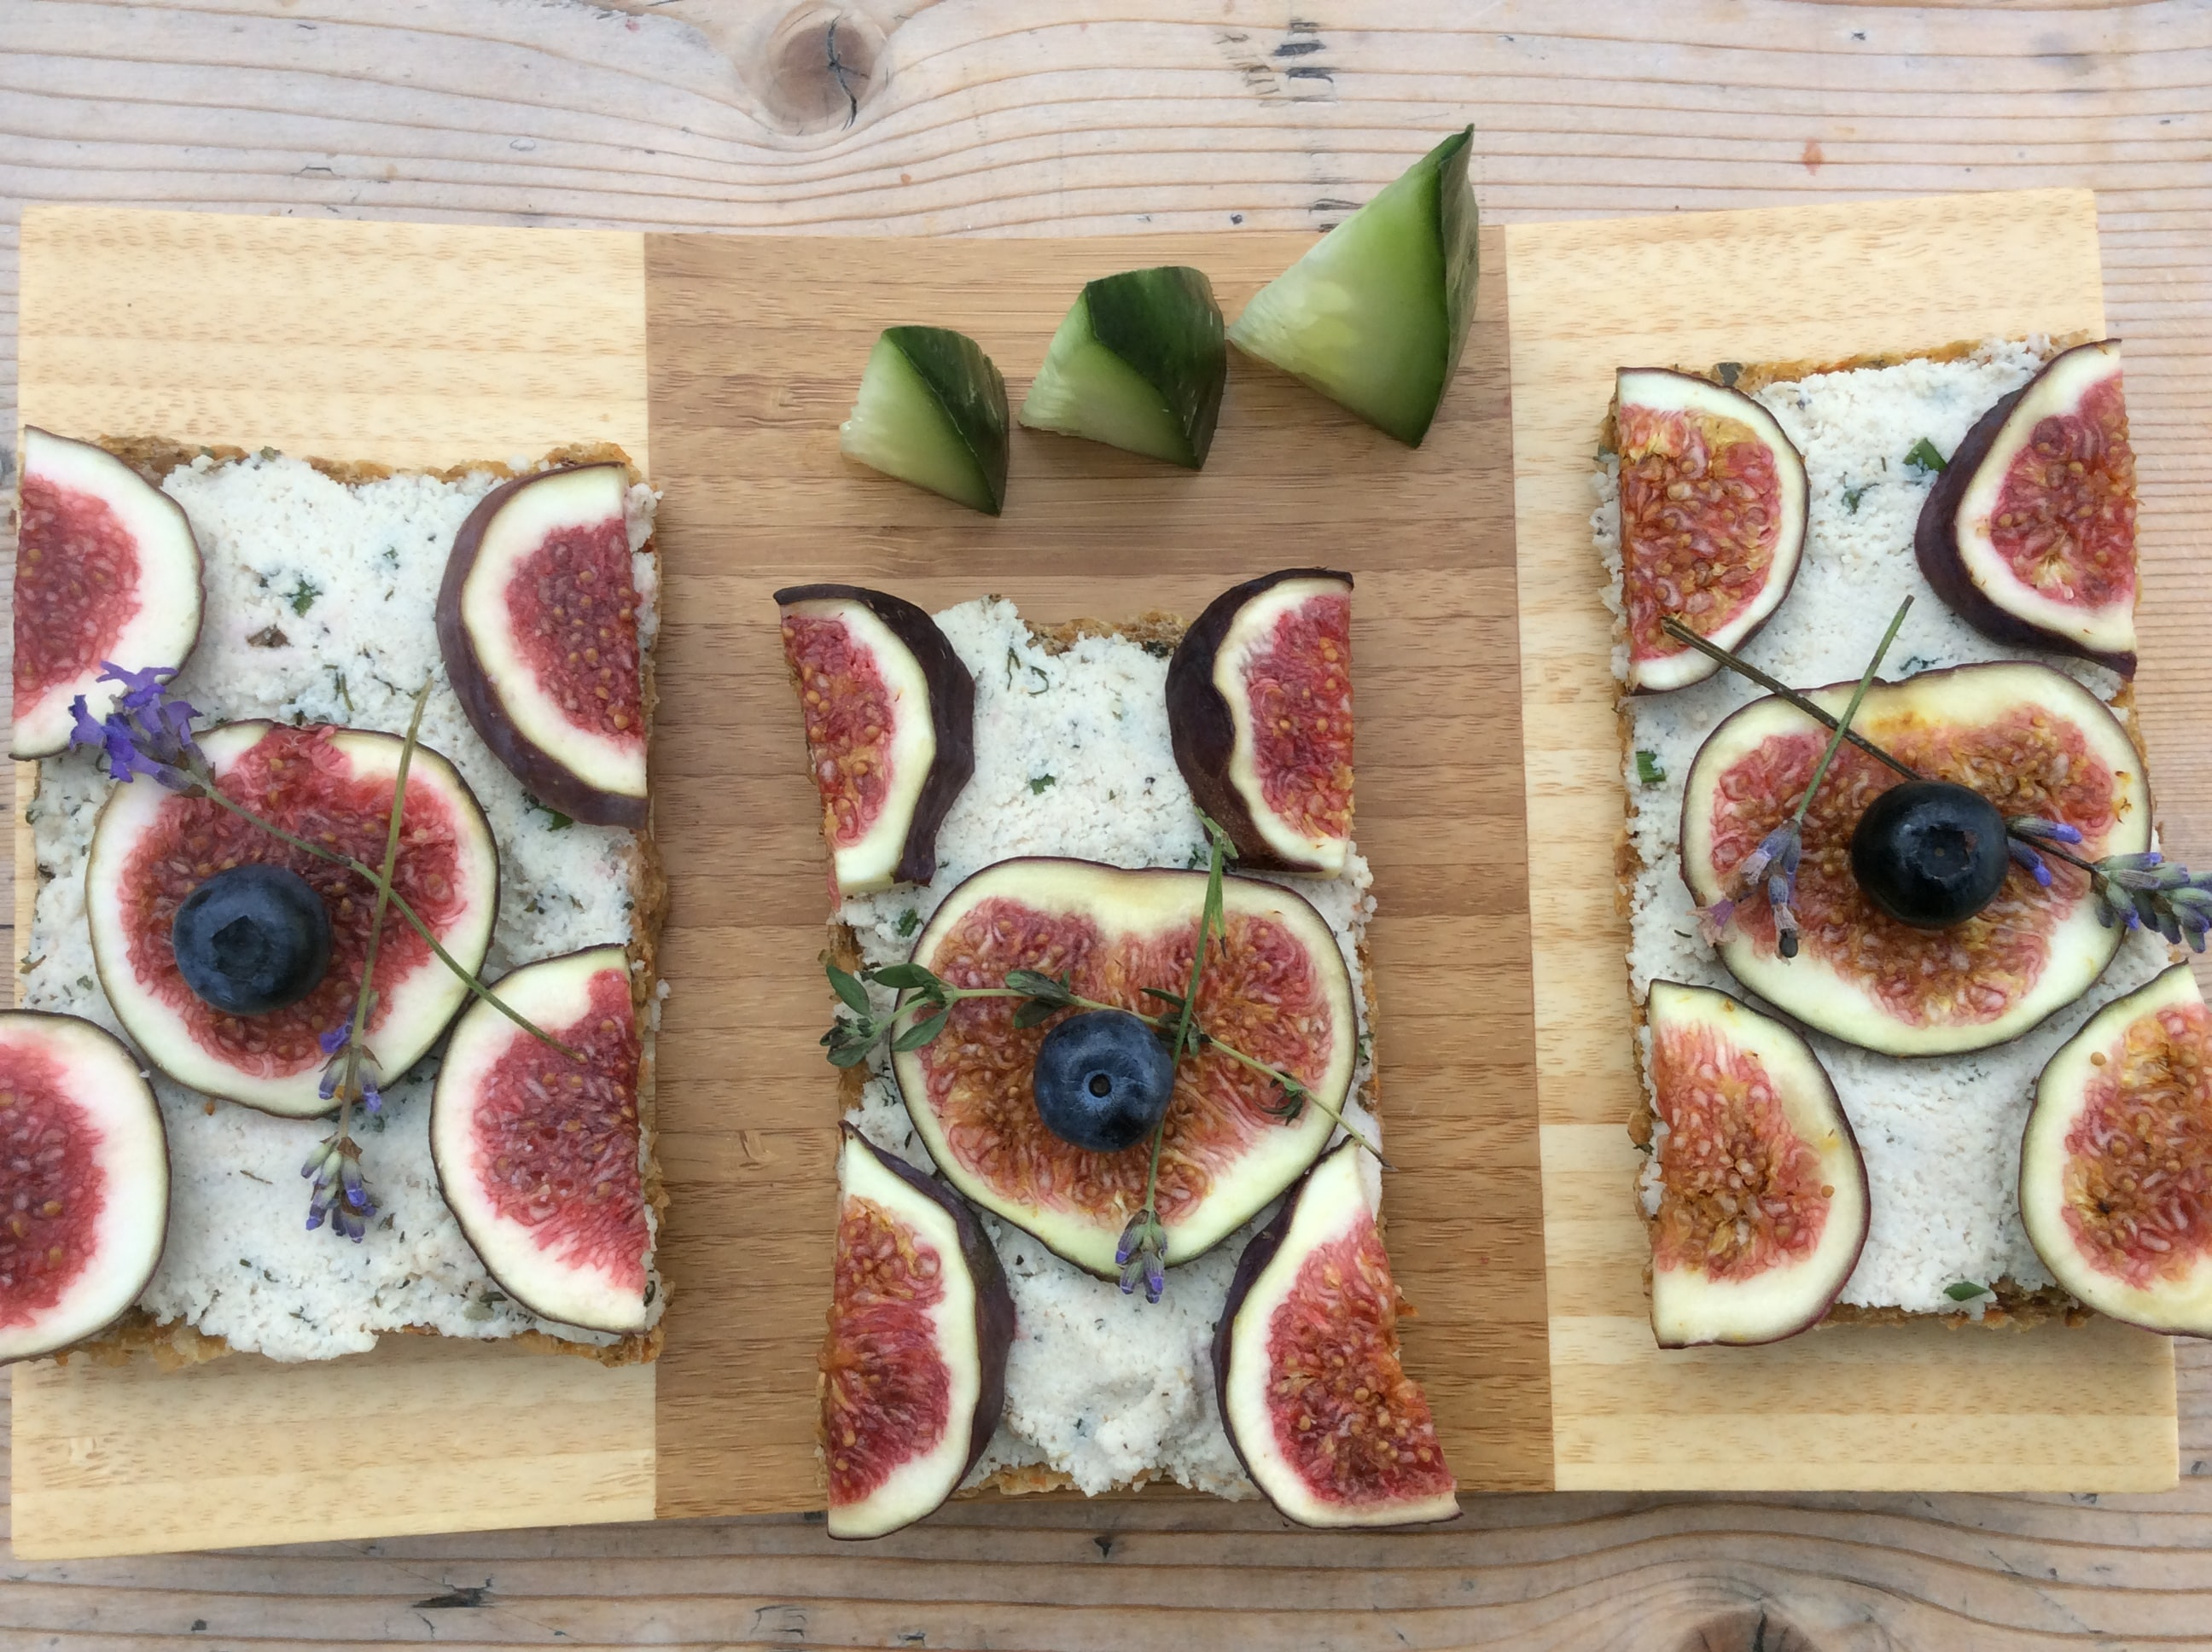 Slices of bread with fresh figs and cucumber dill spread on a cutting board